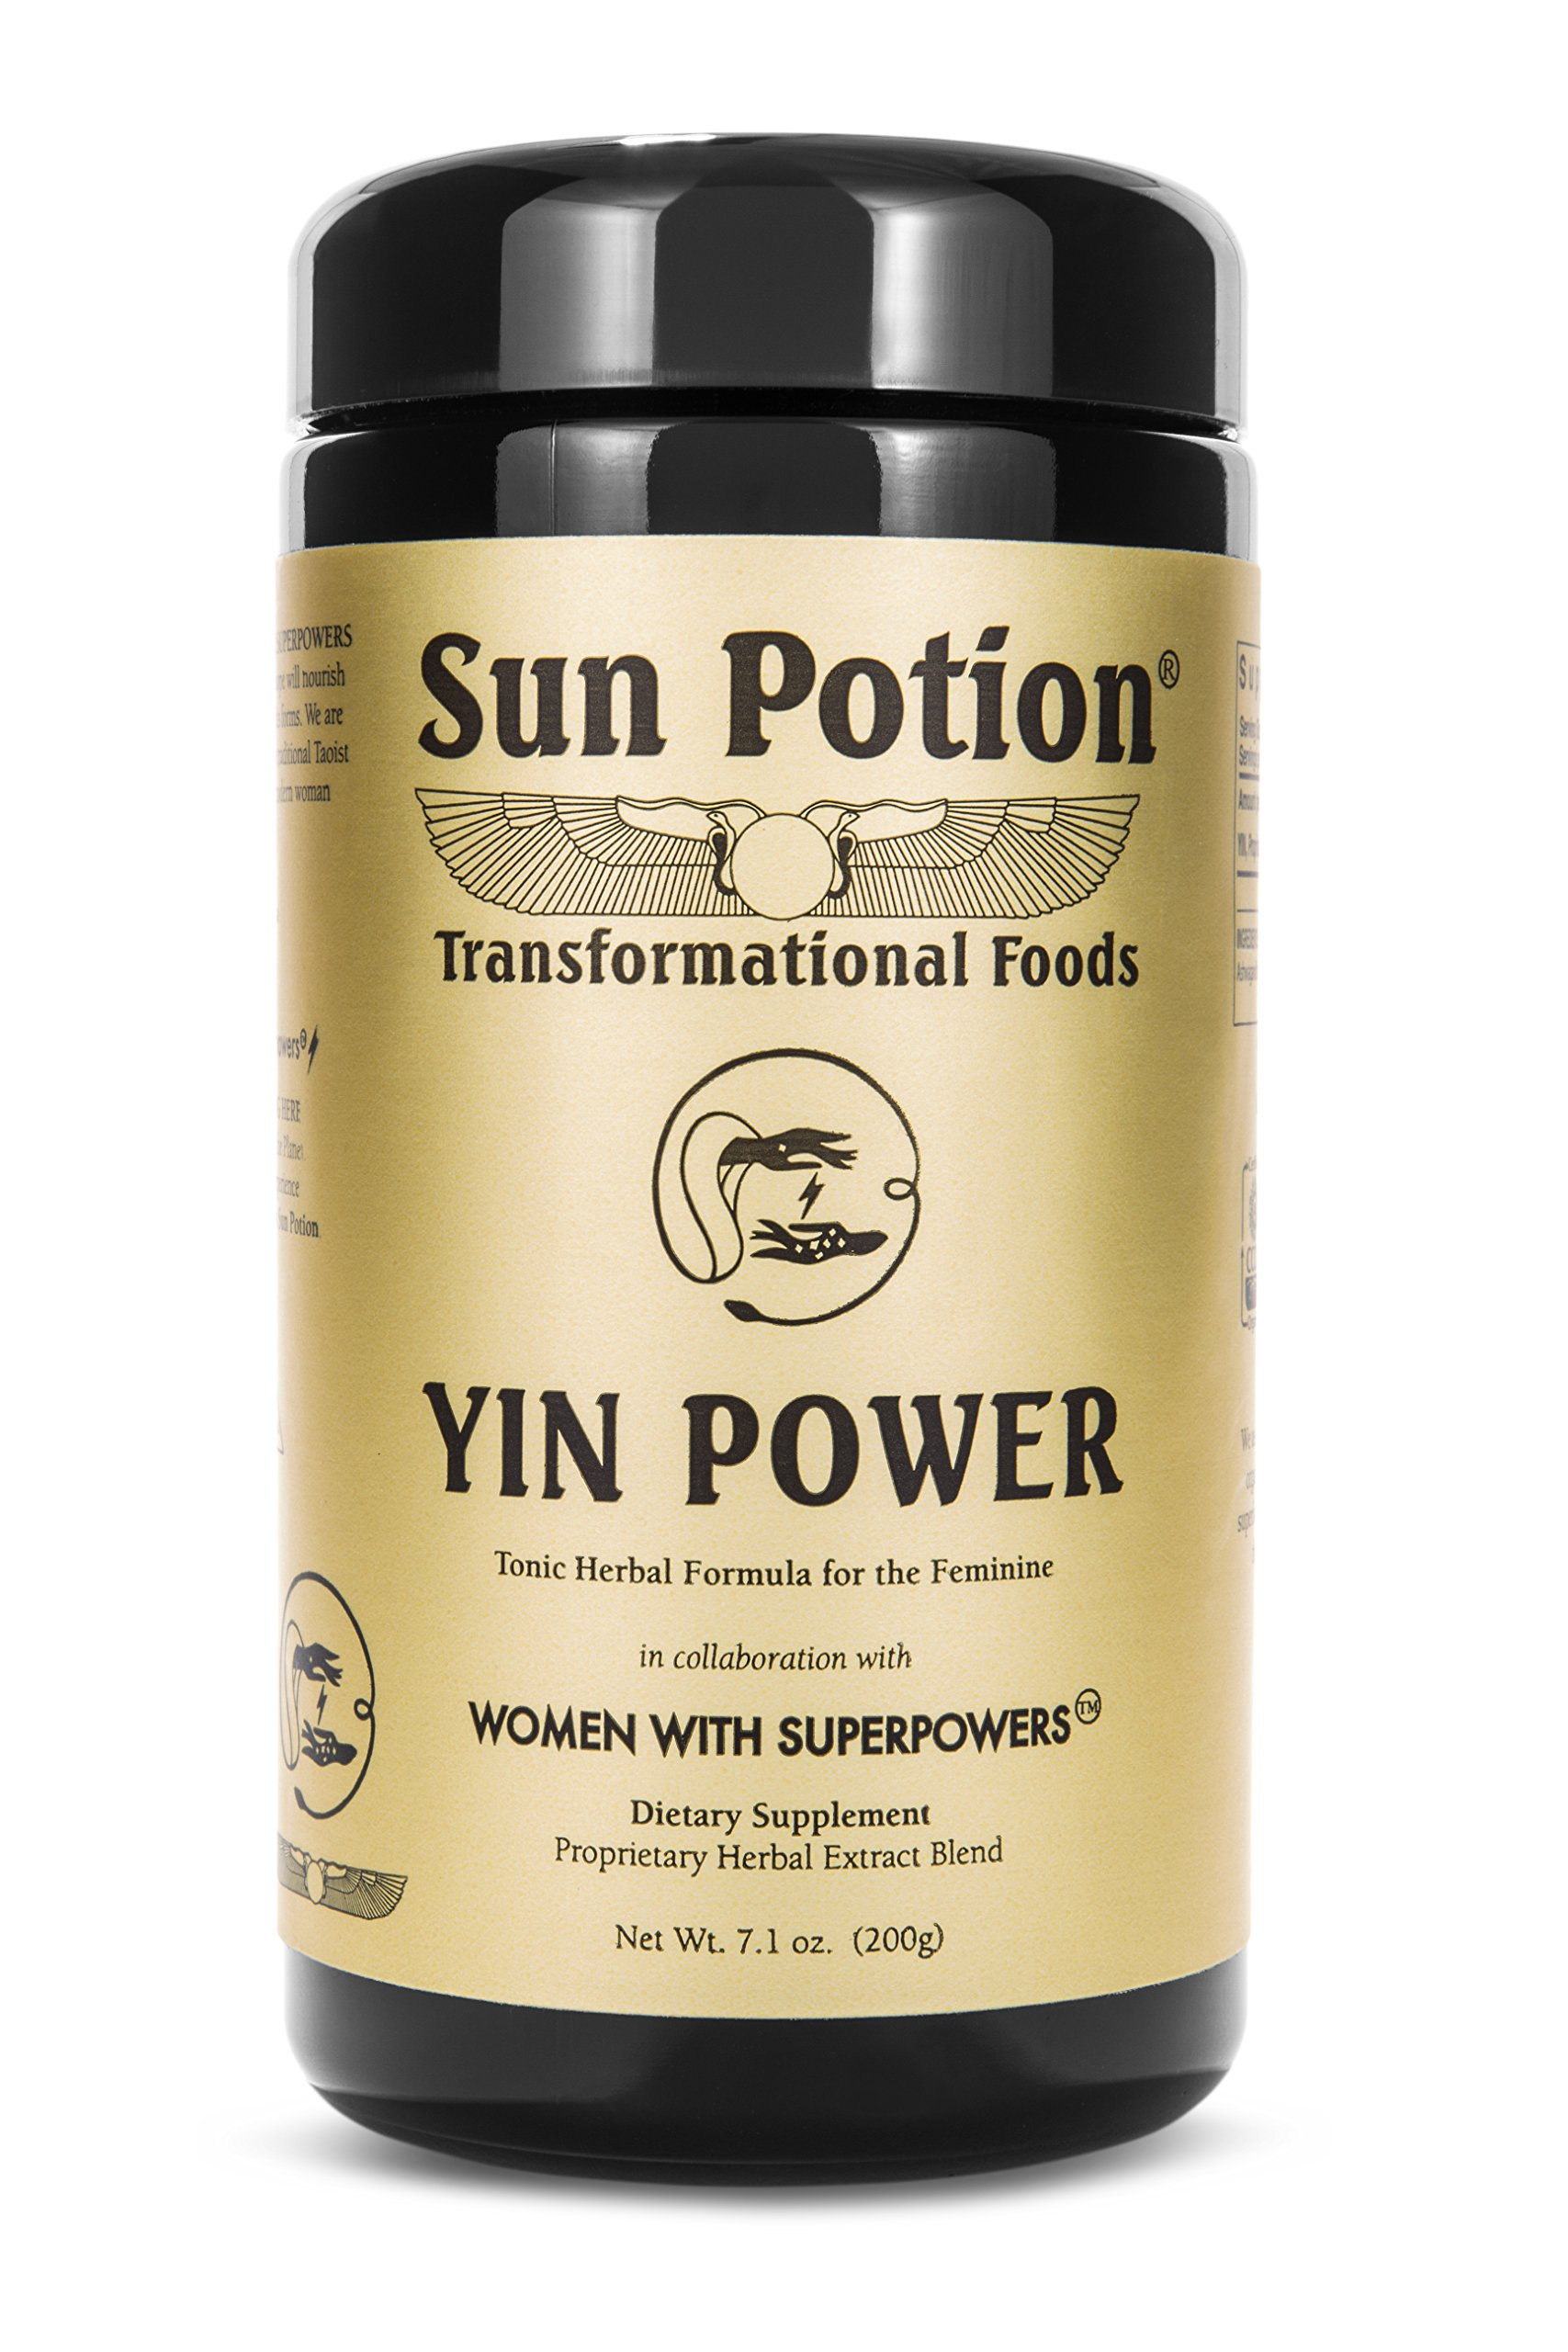 Yin Power by Sun Potion - Organic Herbal Adaptogenic Supplement and Superfood - Feminine Tonic Powder Formulated with Ashwagandha, Tocos, Reishi, He Shou Wu, Pearl Powder and More - 200g